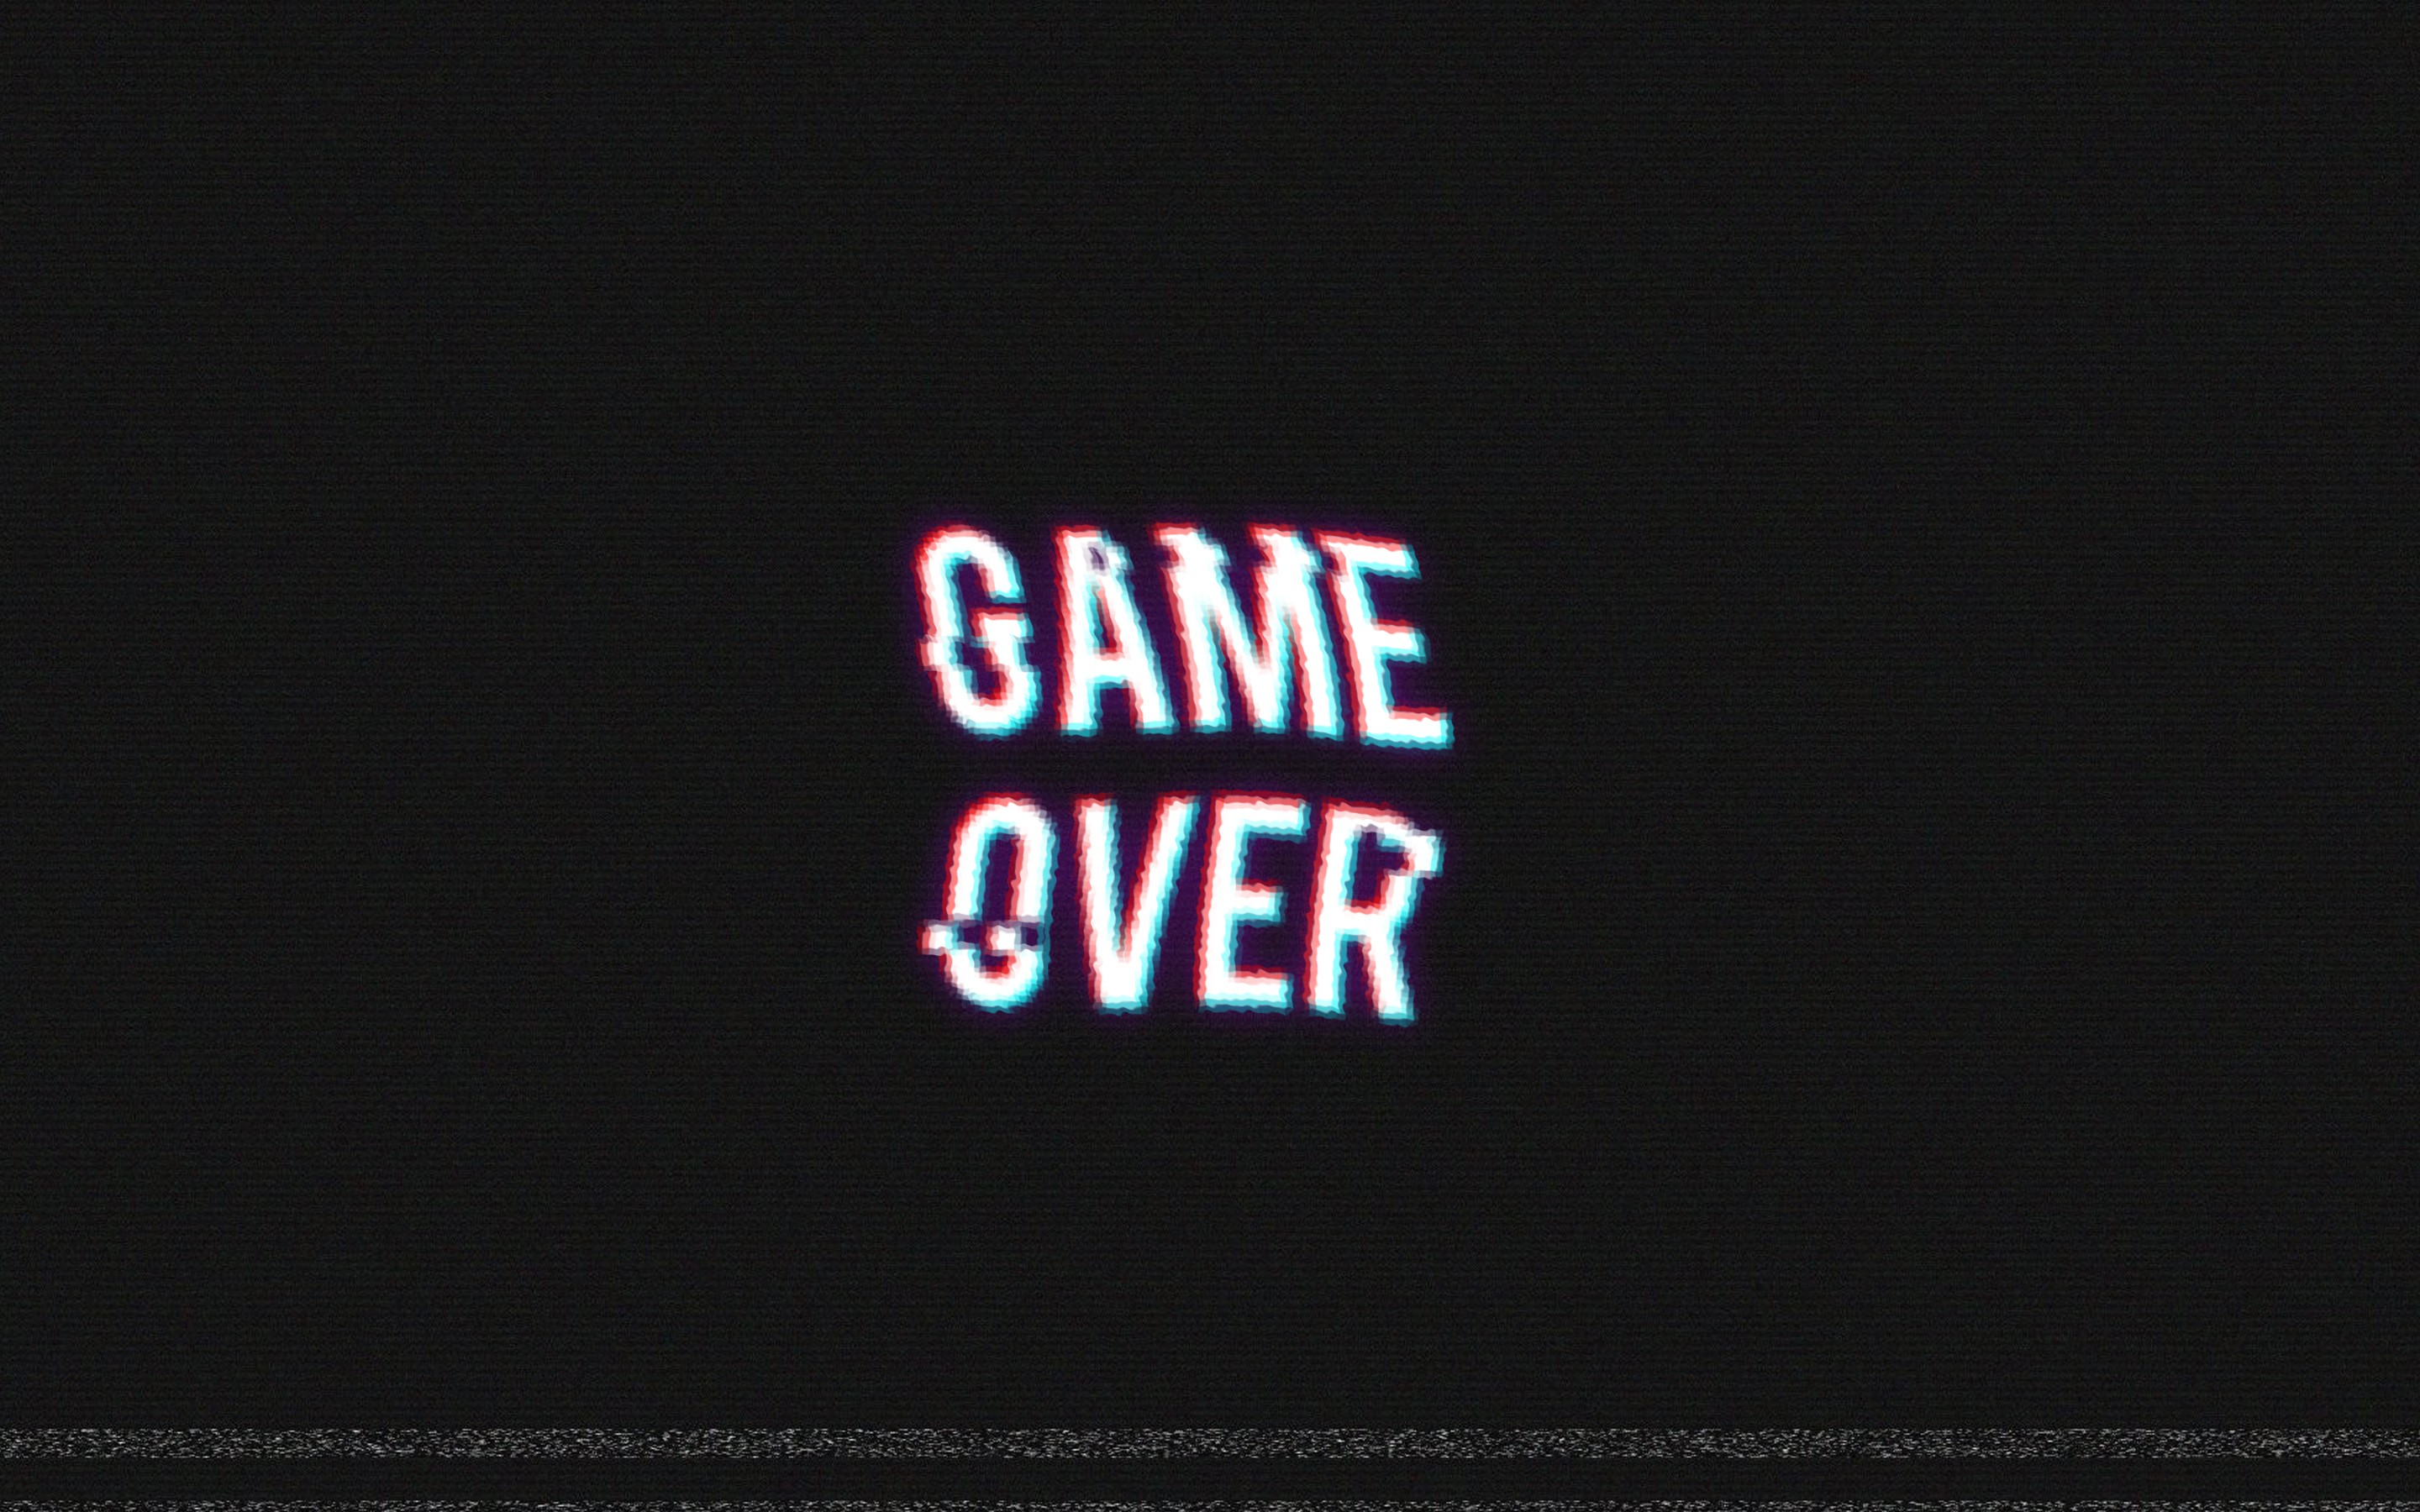 Pacman Wallpaper Iphone X Game Over Video Games Retro Games Distortion Wallpapers